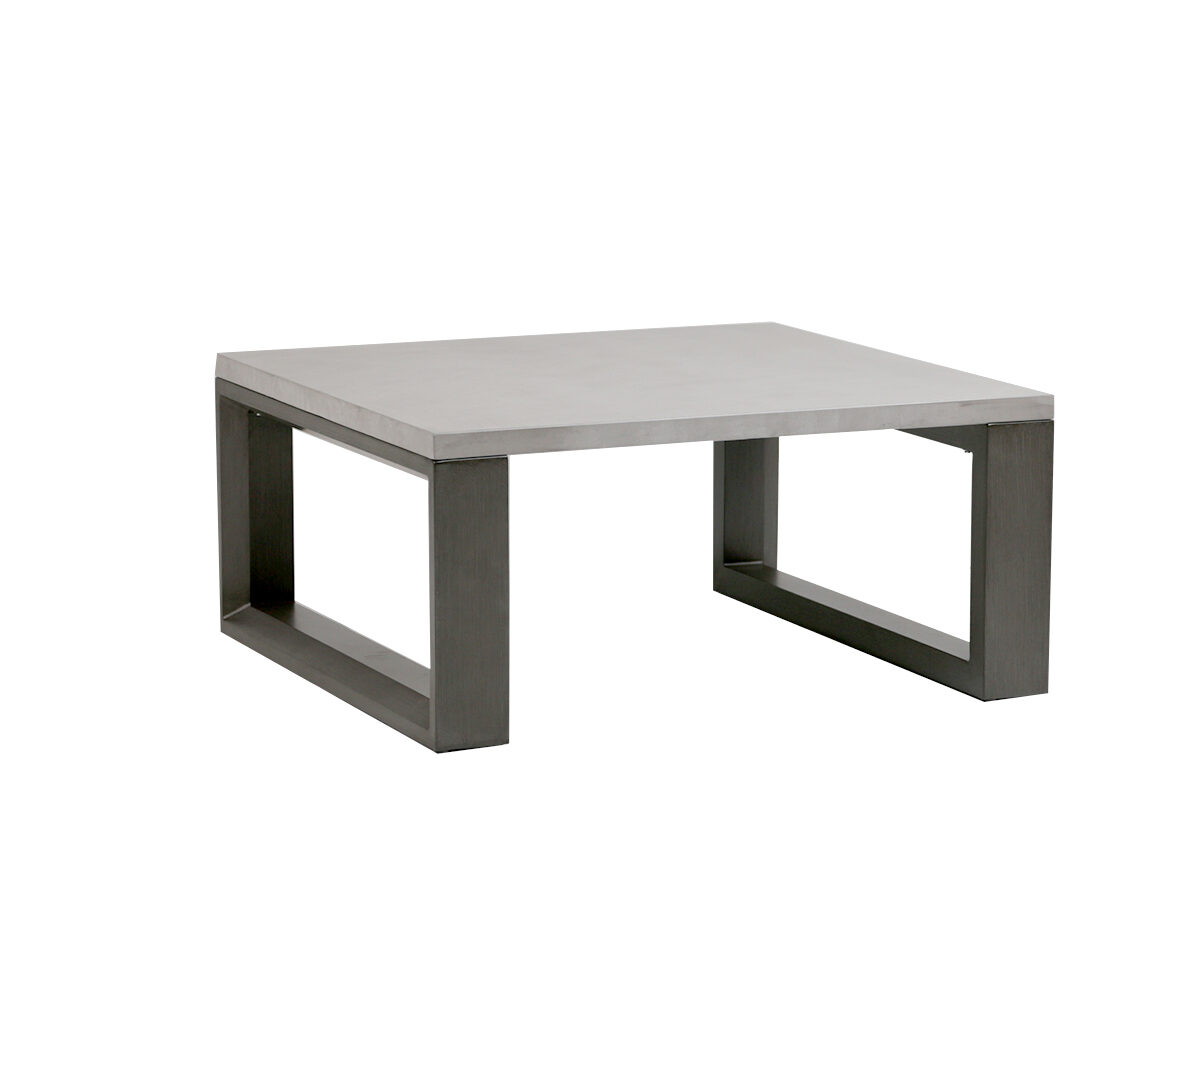 The Element square coffee table by Ratana with Ash Grey frame.